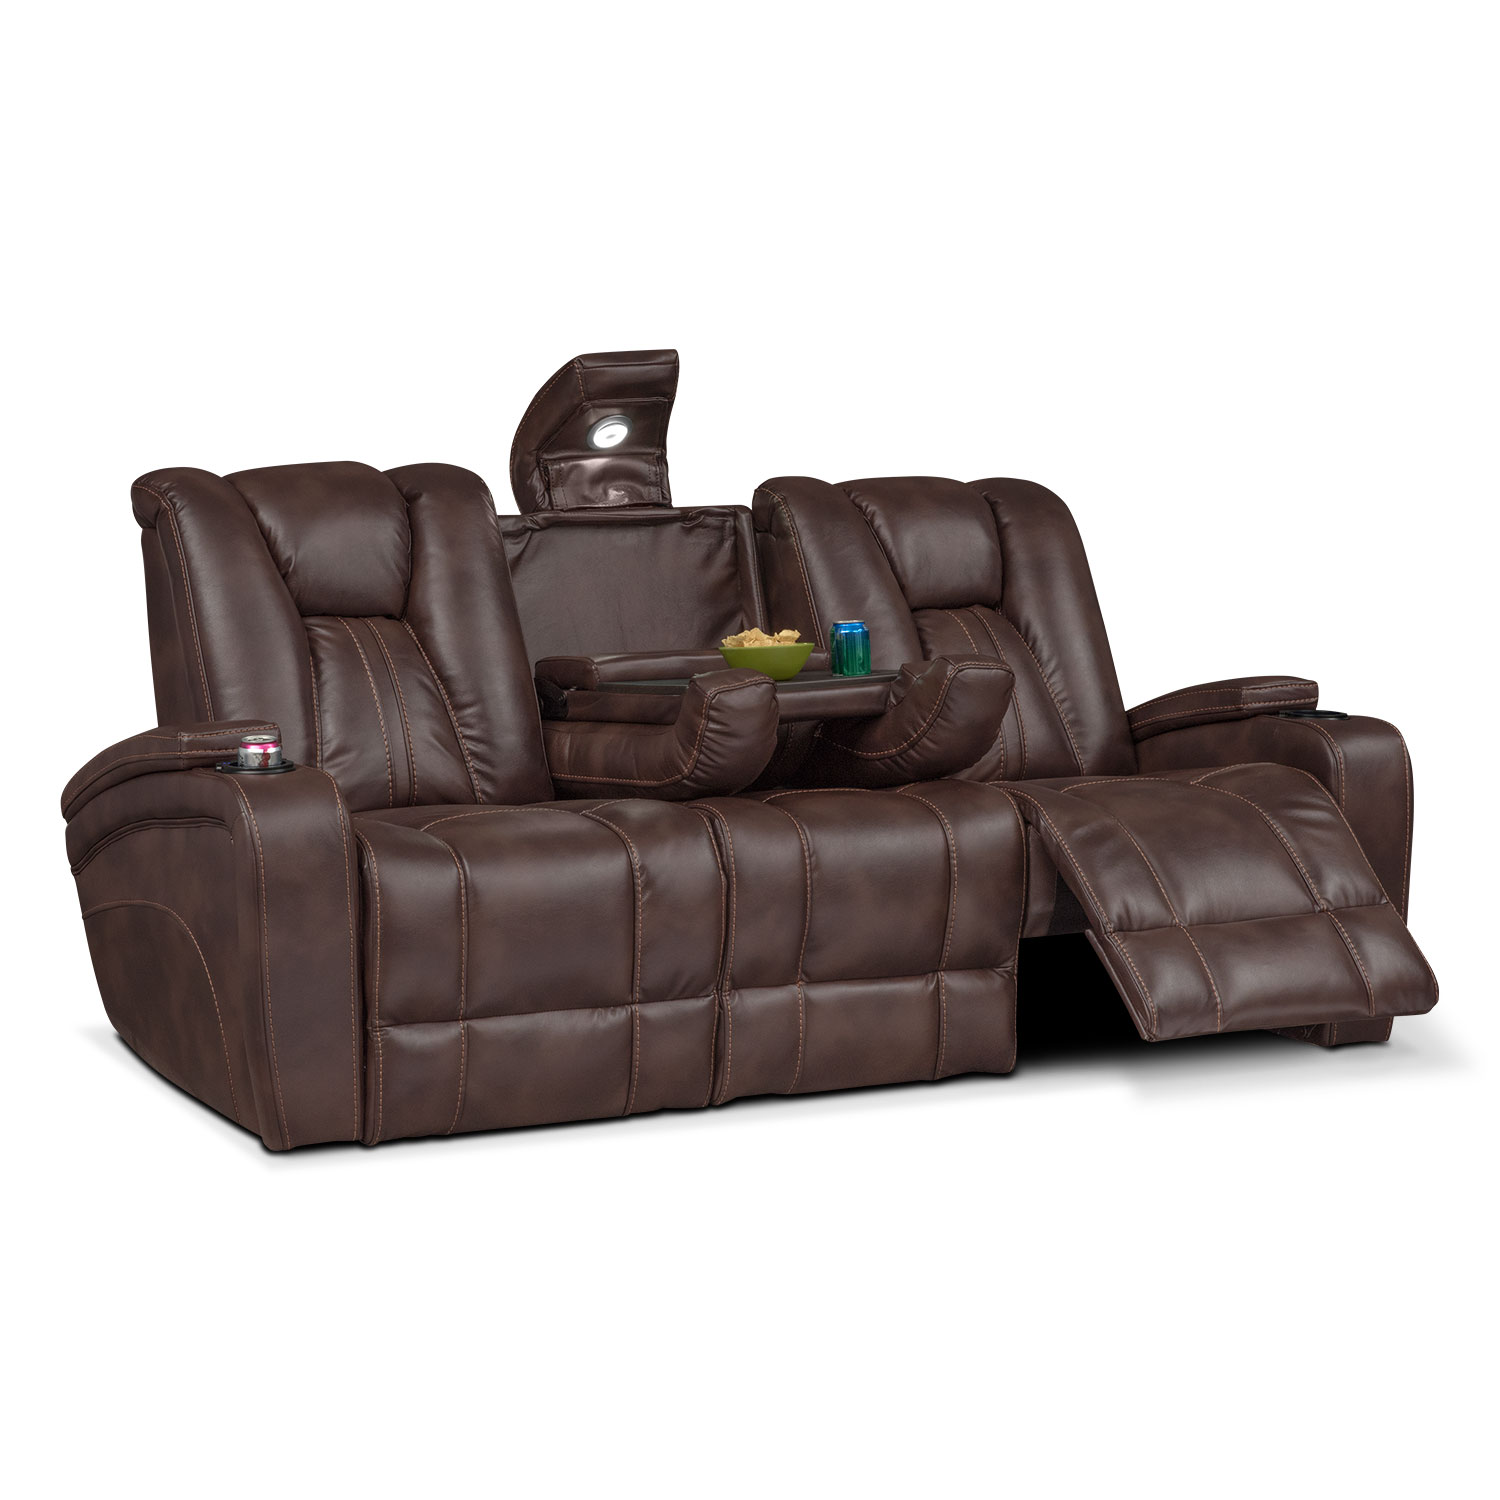 seating recliners pacifico k theater recliner theatre home s tepperman